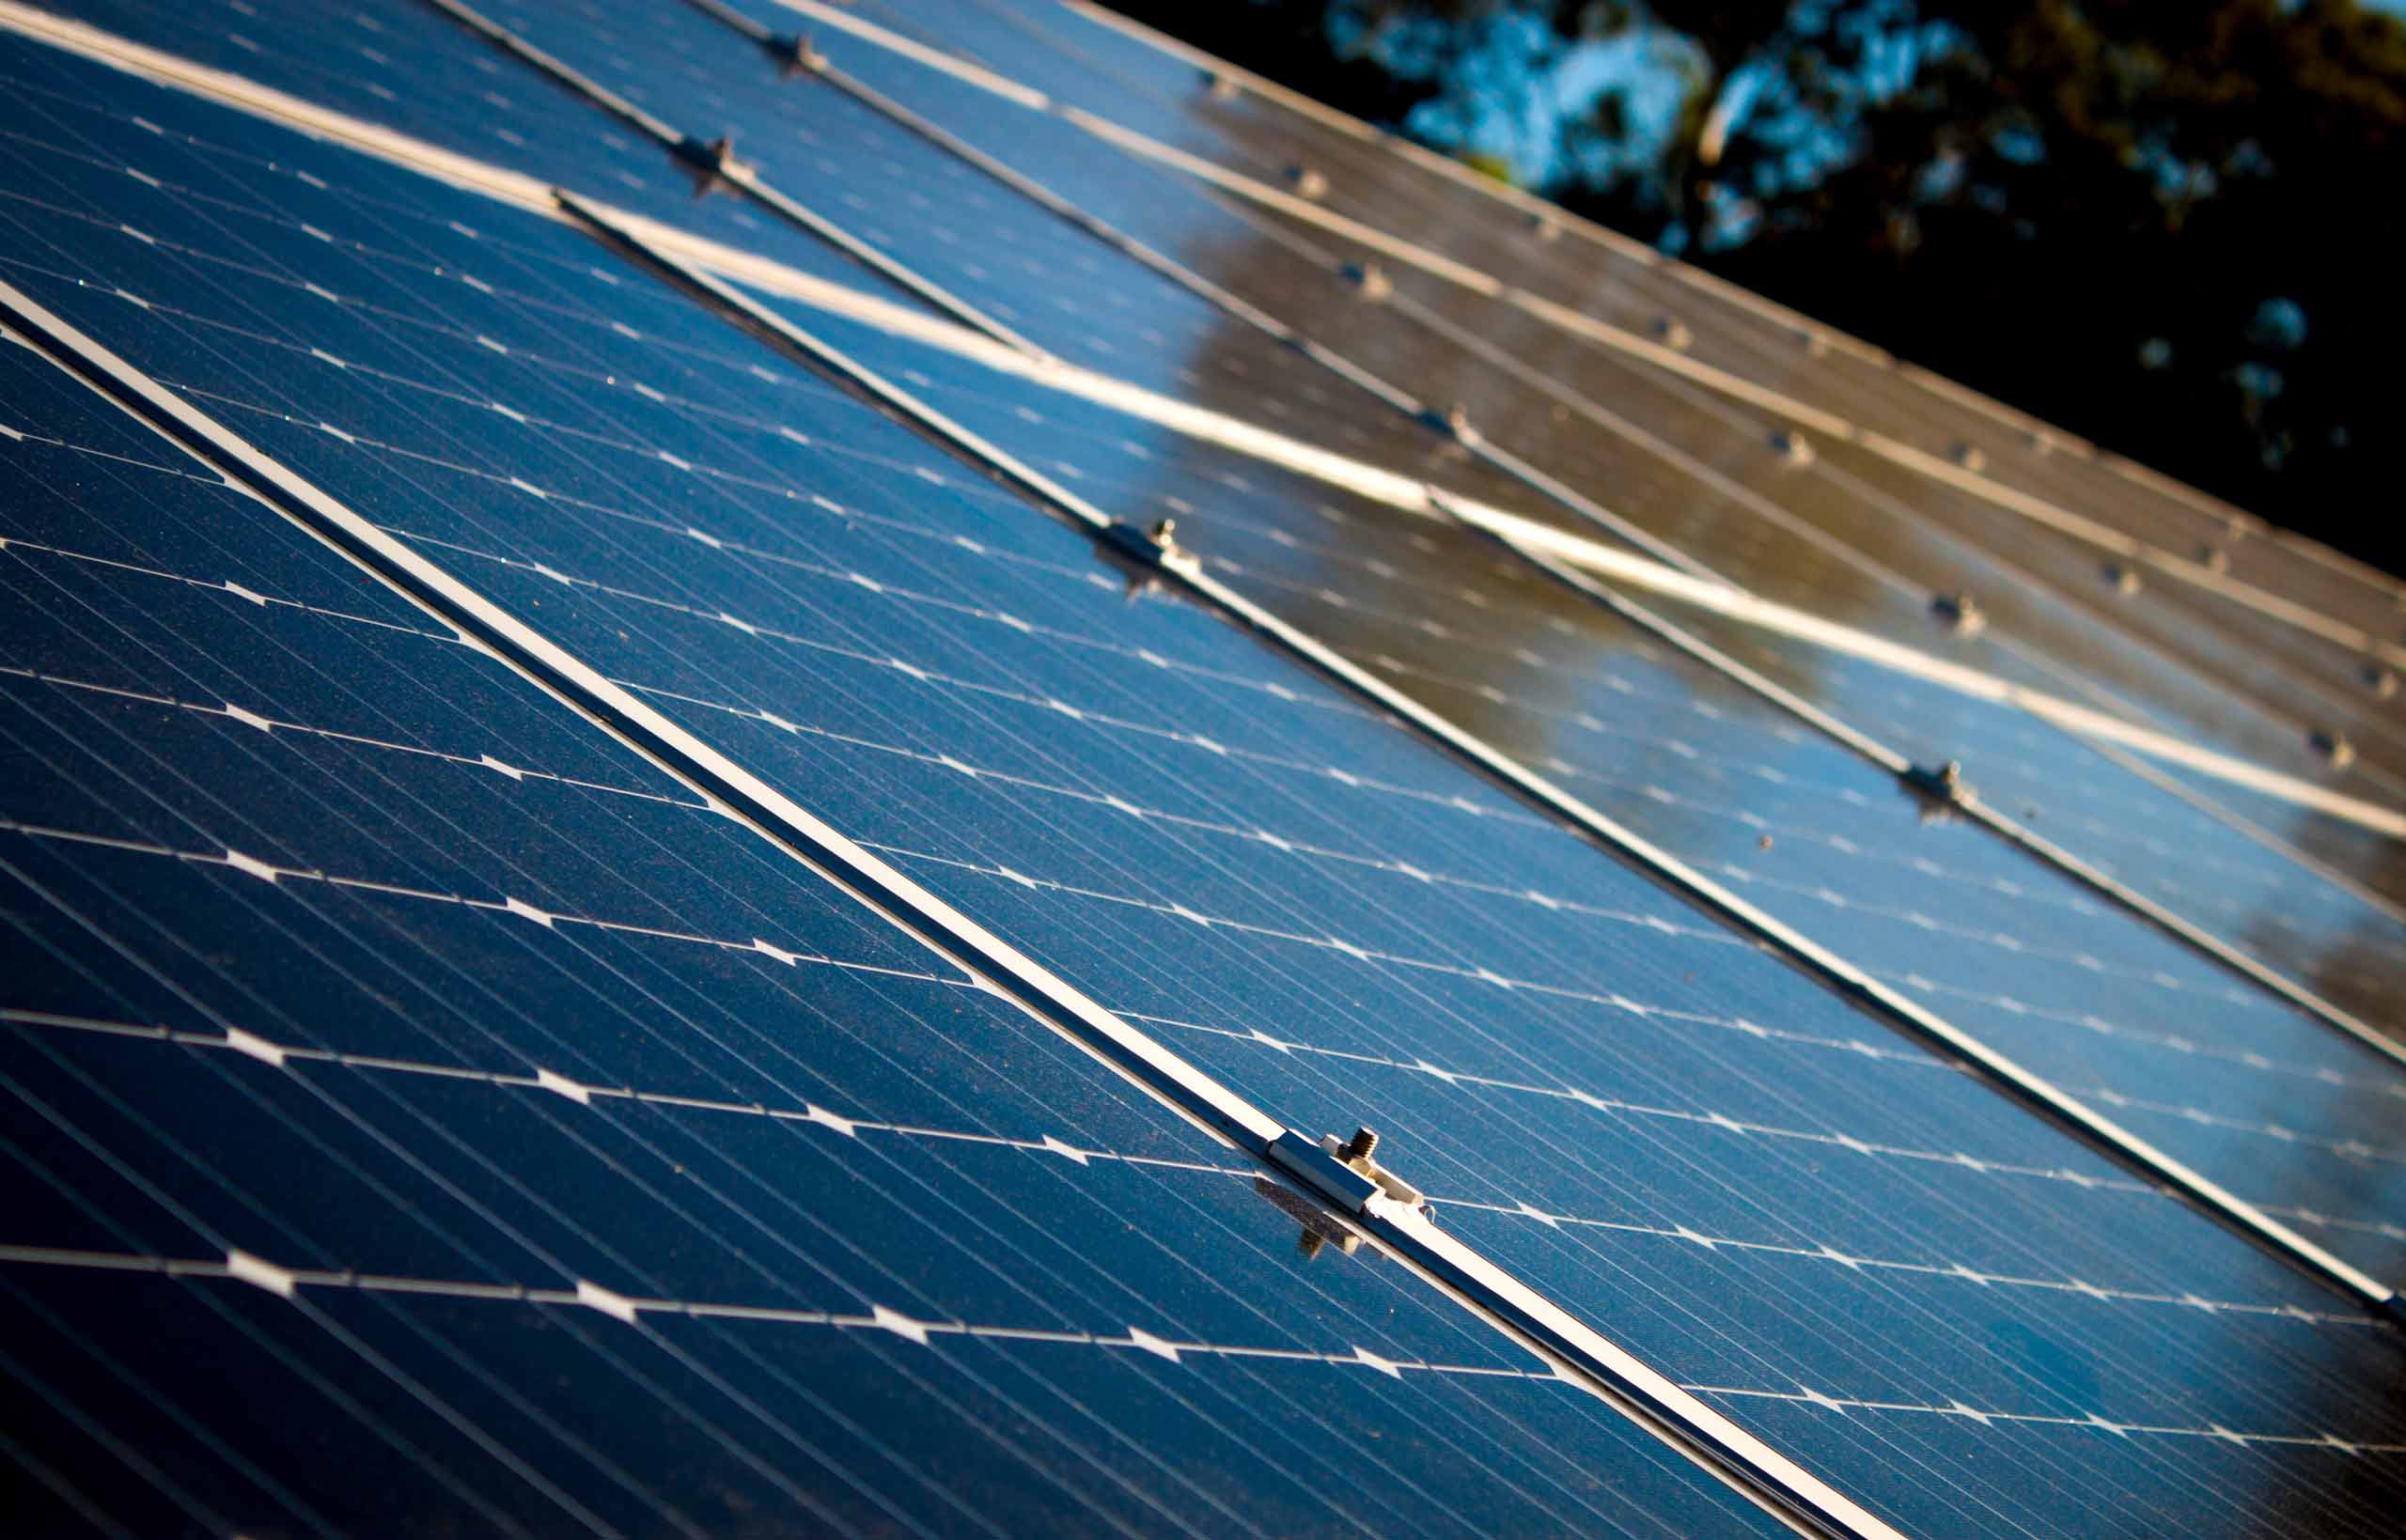 Closeup of rooftop PV solar panels on a beautiful, sunny day, with the trees in the background reflecting off the panel's shiny surface.